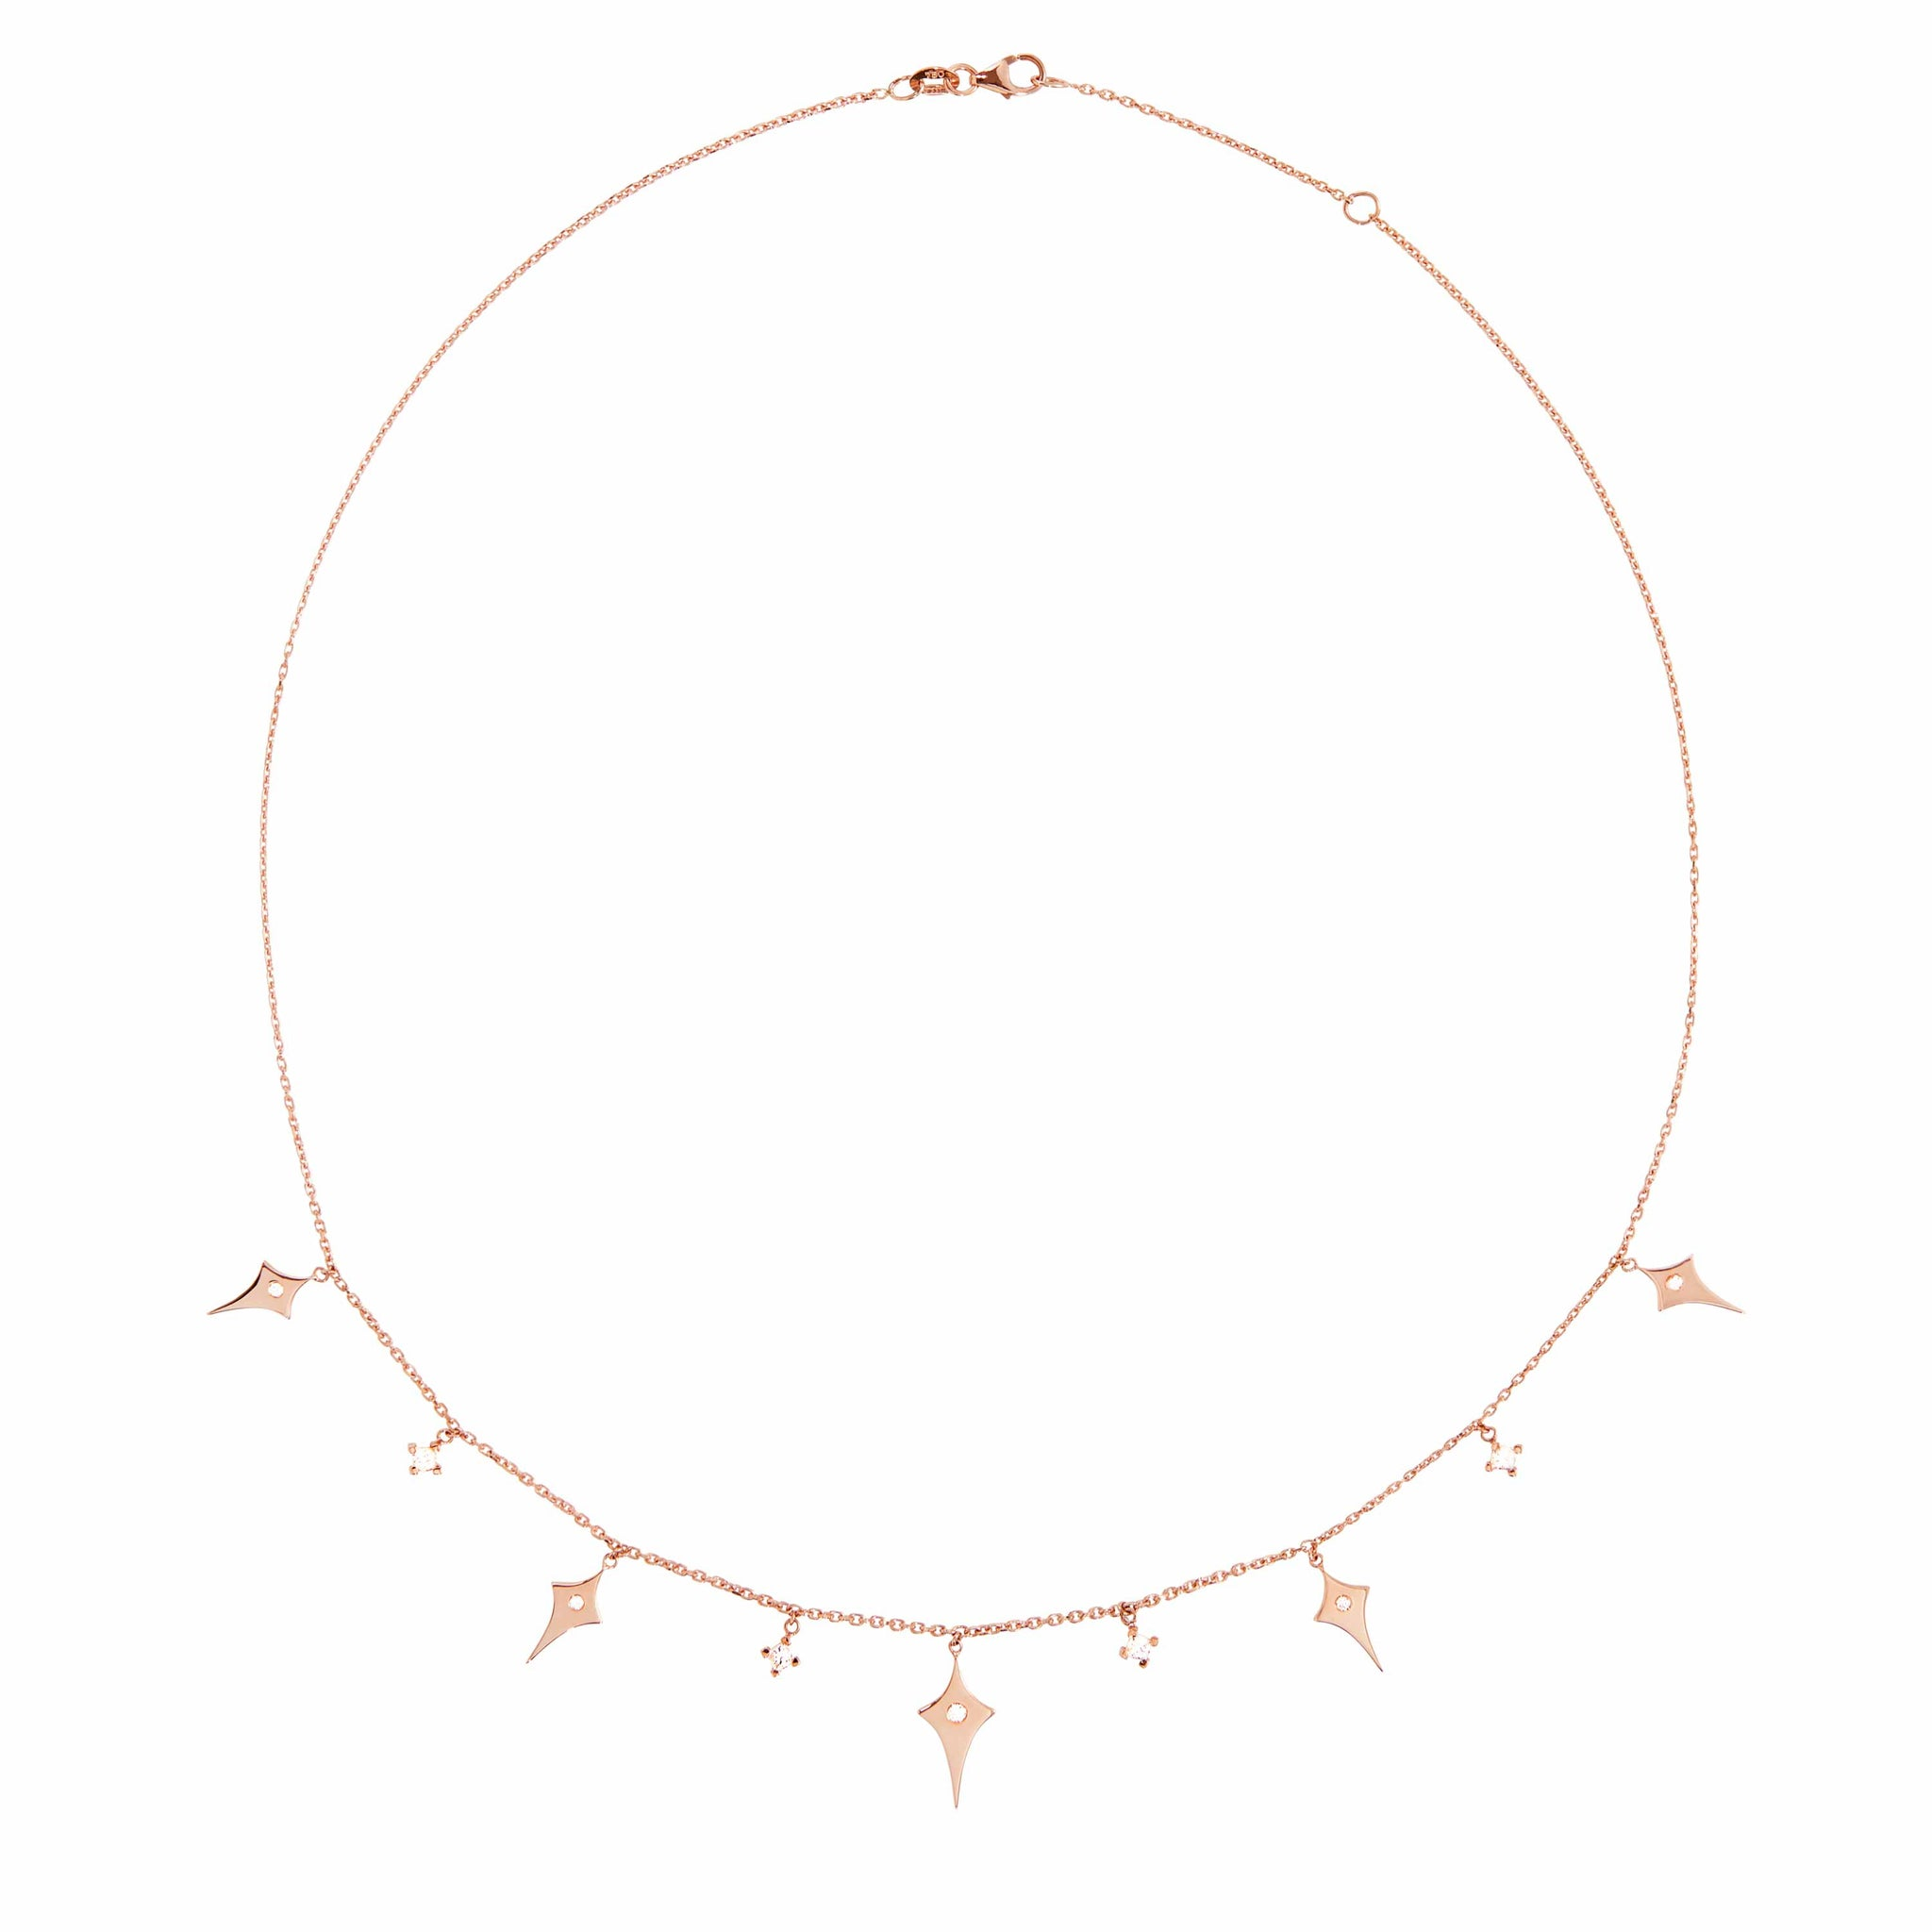 Diane Kordas 18k Rose Gold Multi-Shield and Diamond Charm Necklace